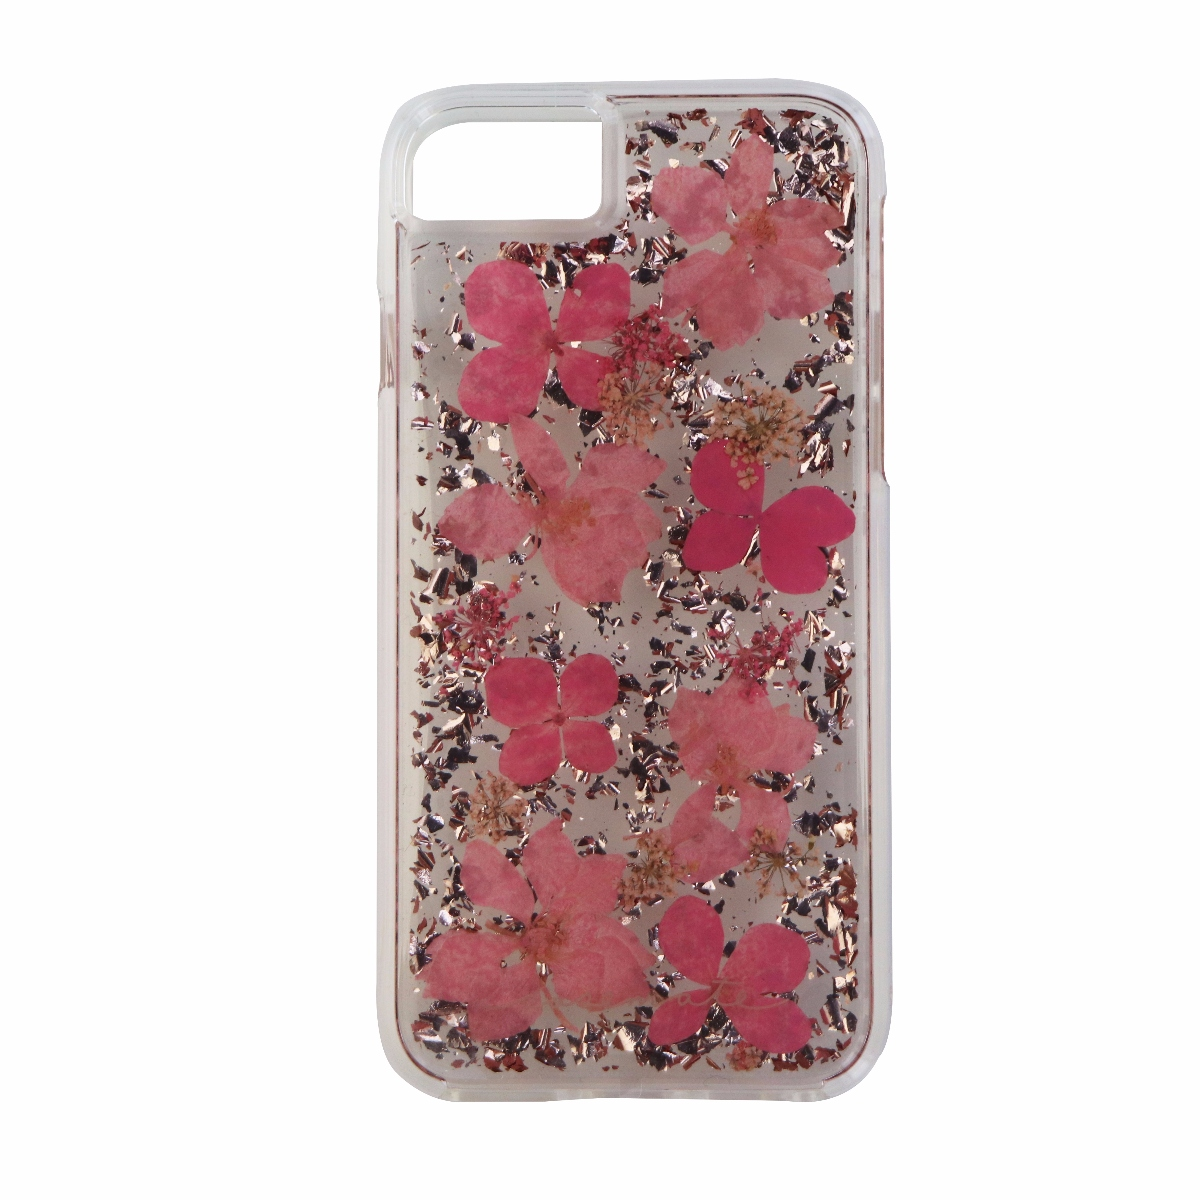 Case-Mate Karat Petals Series Protective Case Cover for iPhone 8 7 Pink Flowers